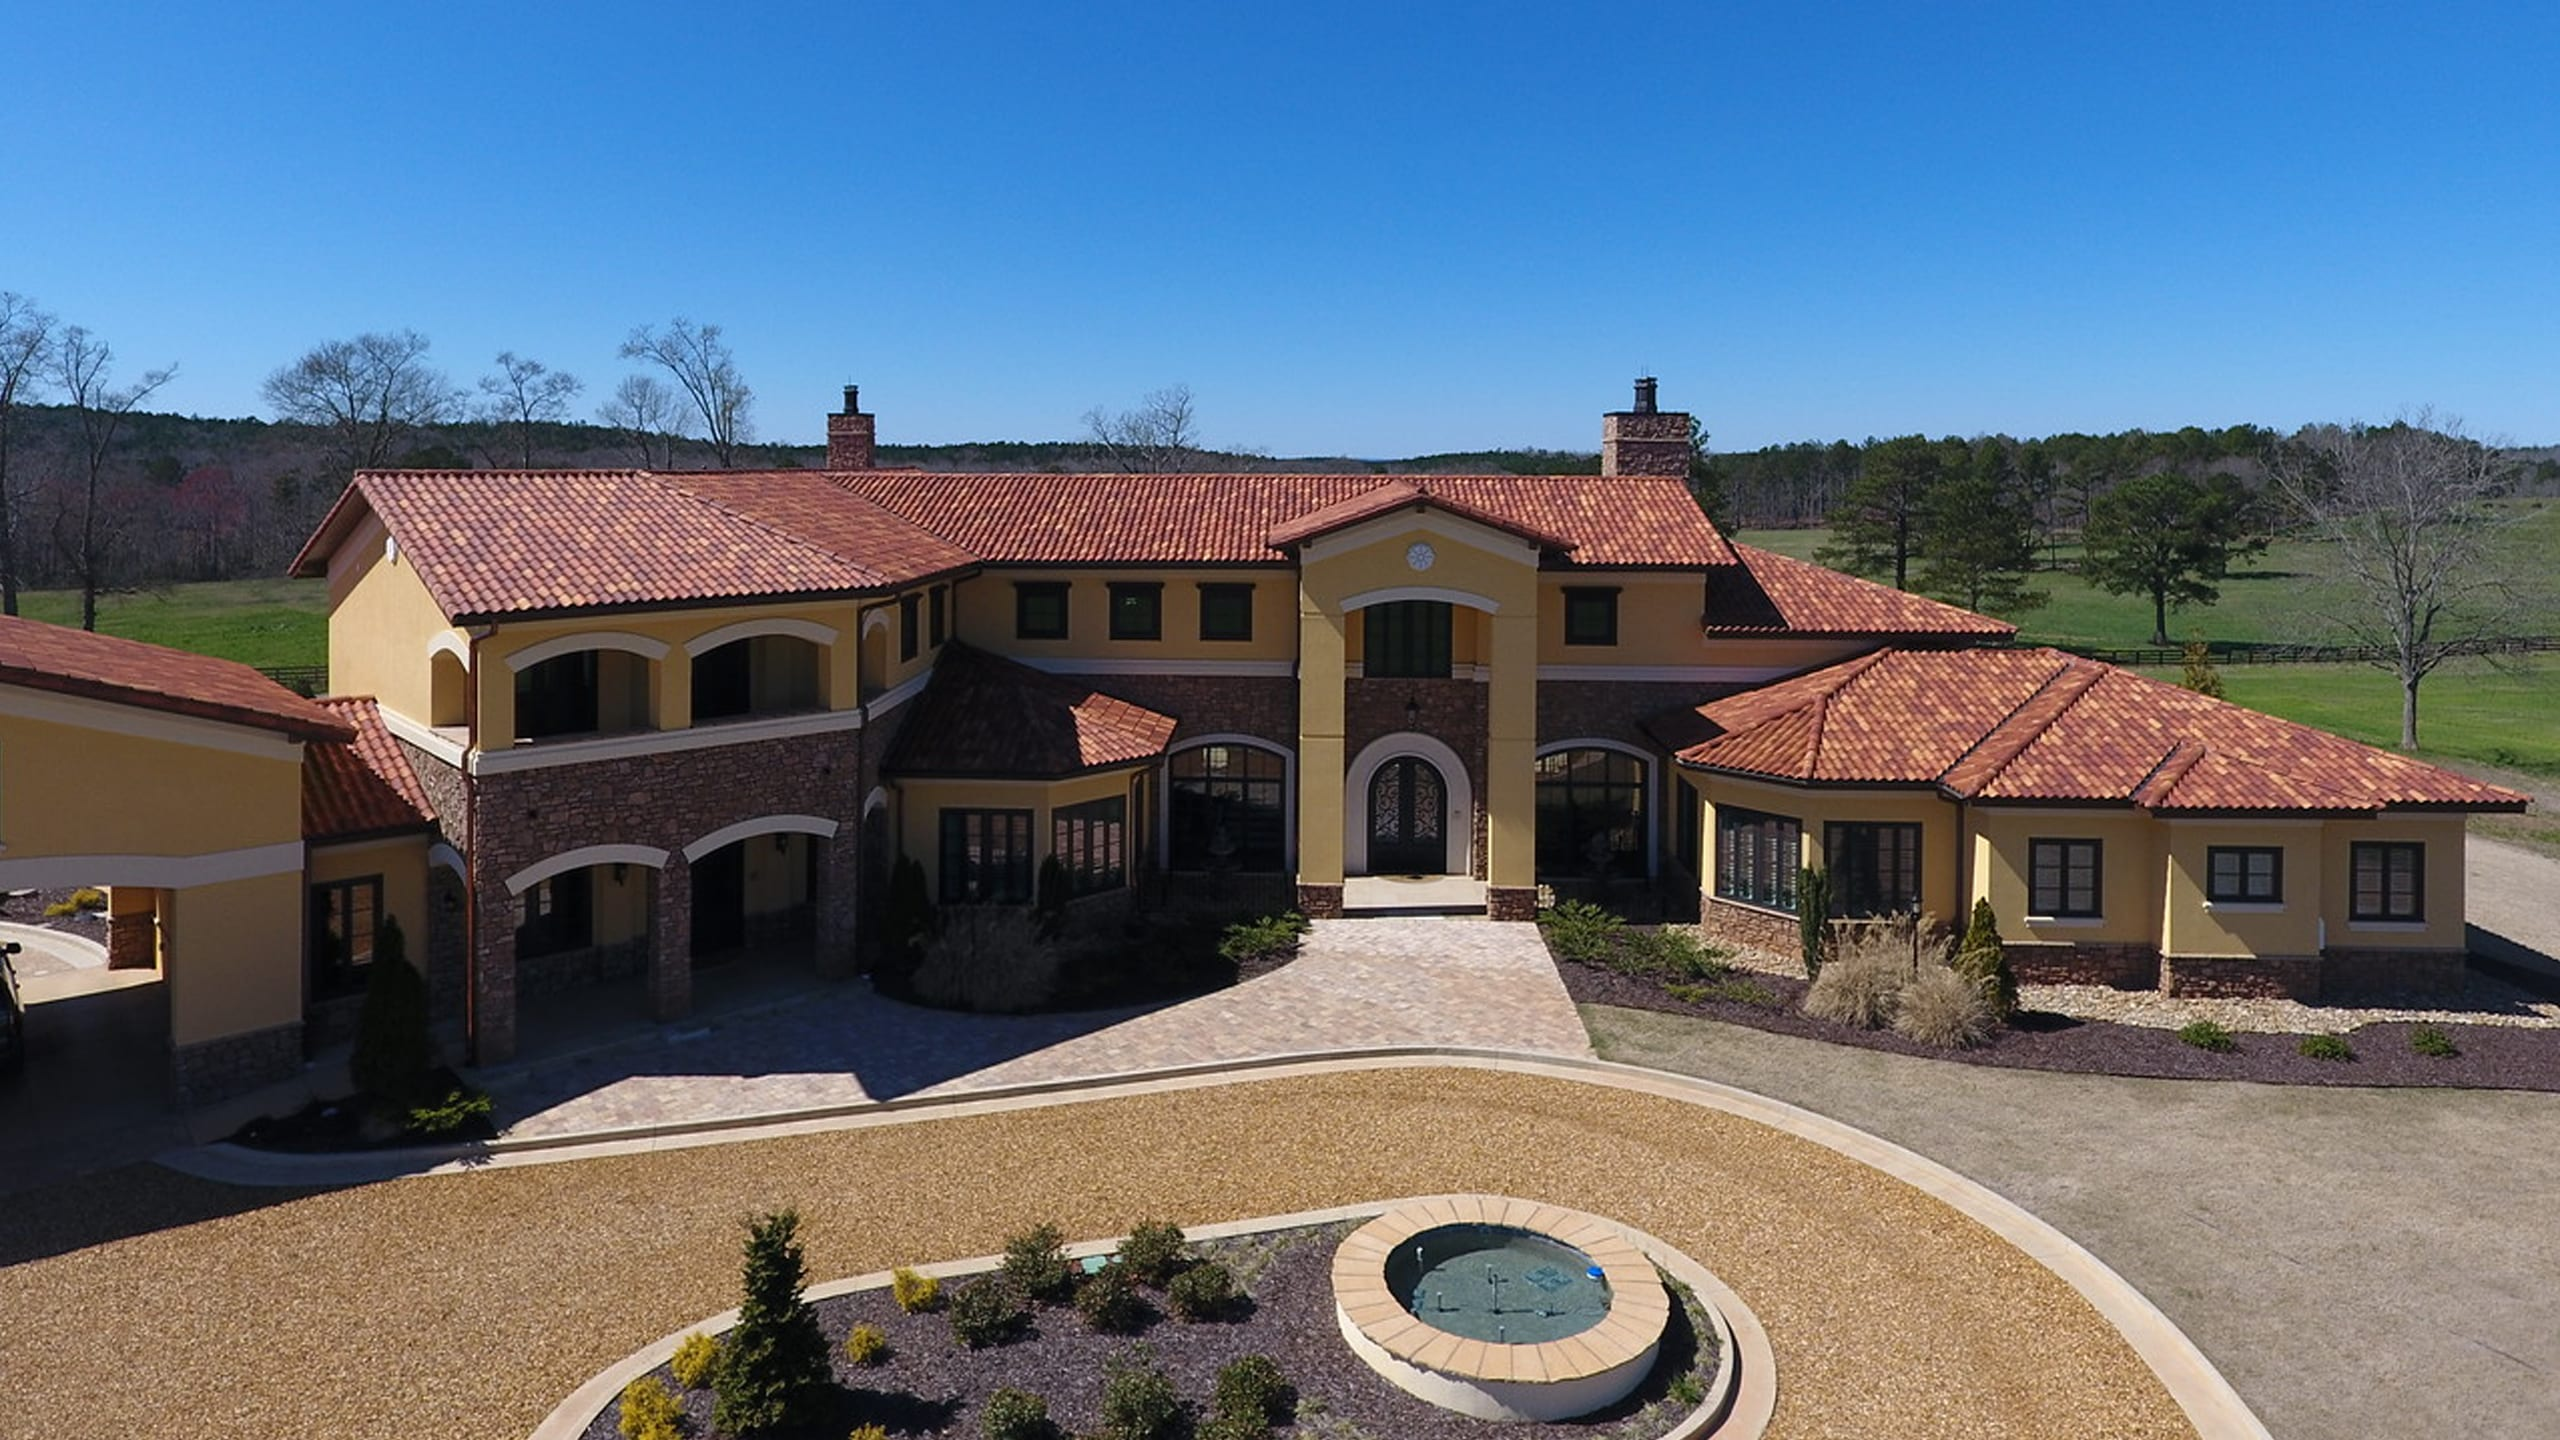 Private Residence - Newman Ludowici Roof Tile